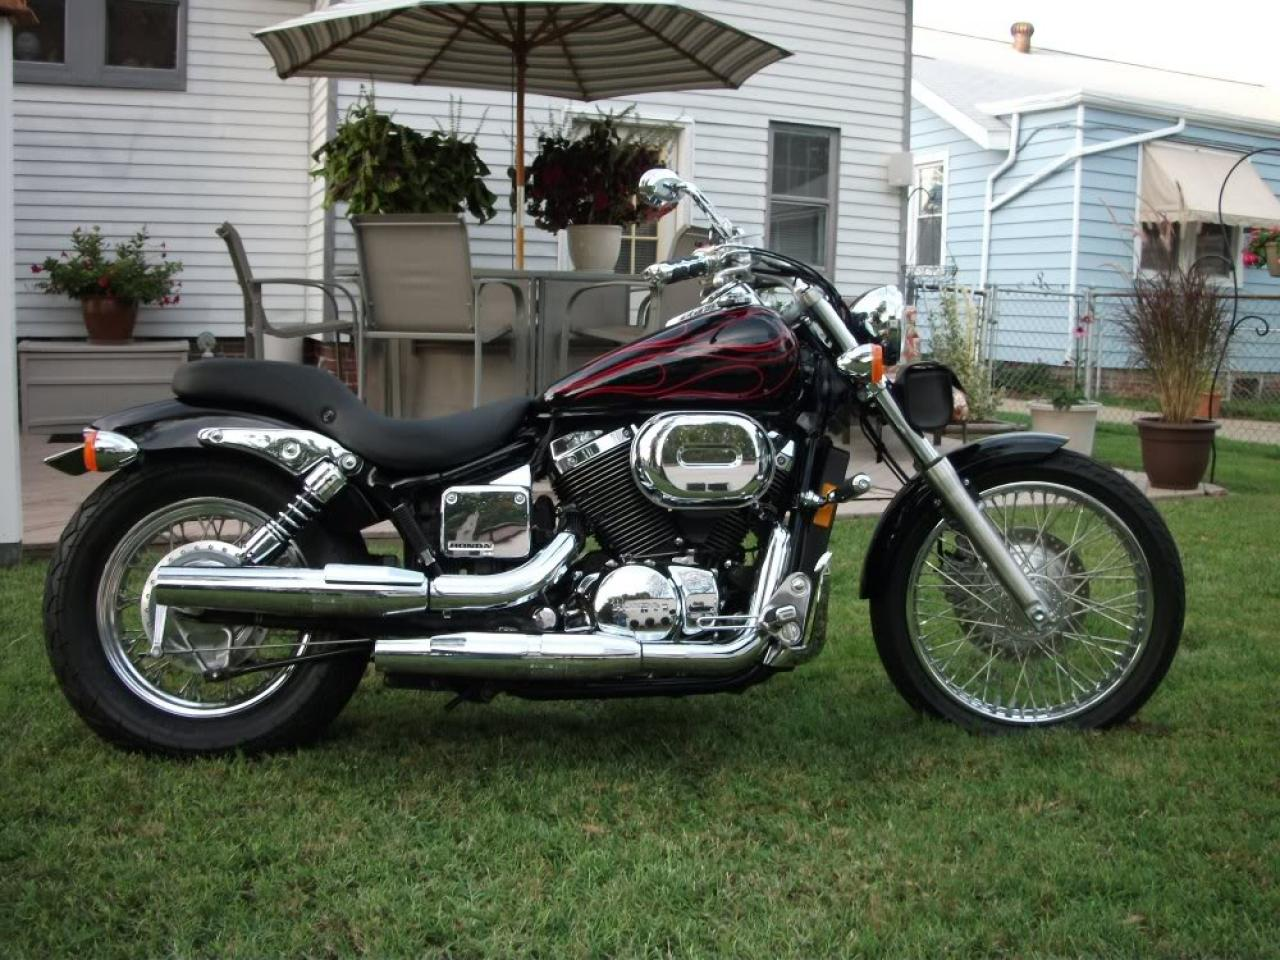 2007 honda shadow spirit 750dc vt 750 dc moto. Black Bedroom Furniture Sets. Home Design Ideas